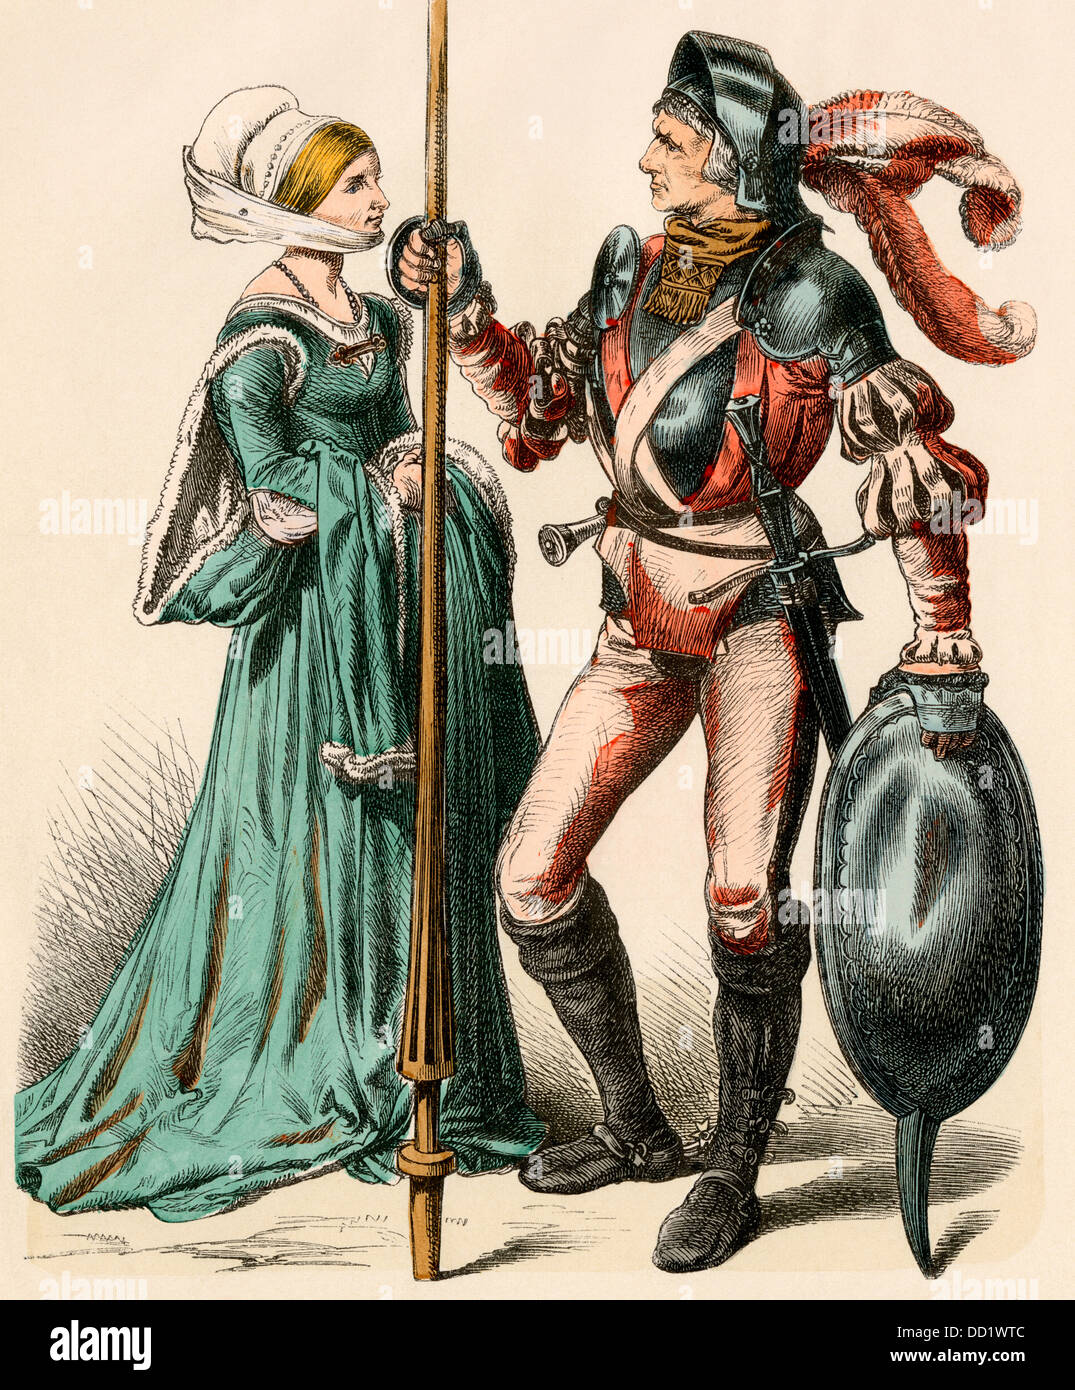 German woman and a man wearing armor of the early 1500s. Hand-colored print - Stock Image